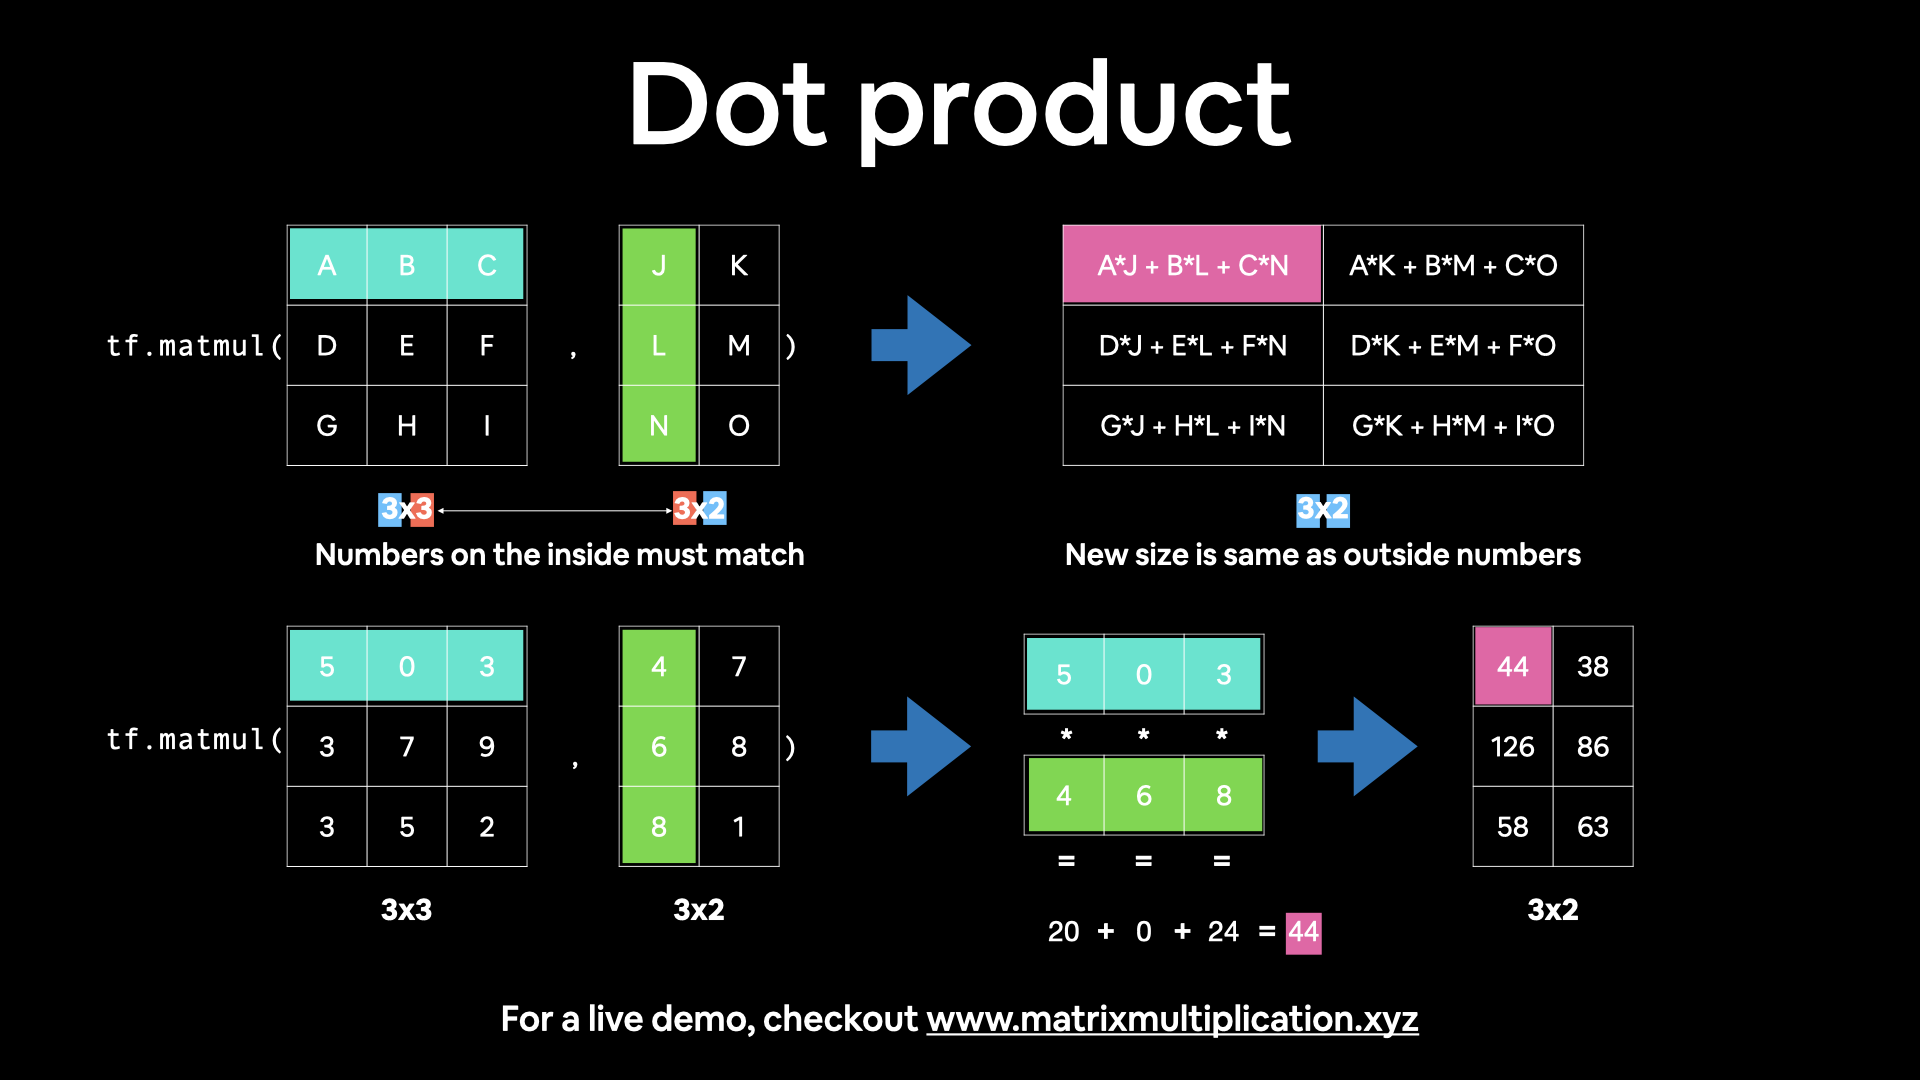 lining up dimensions for dot products